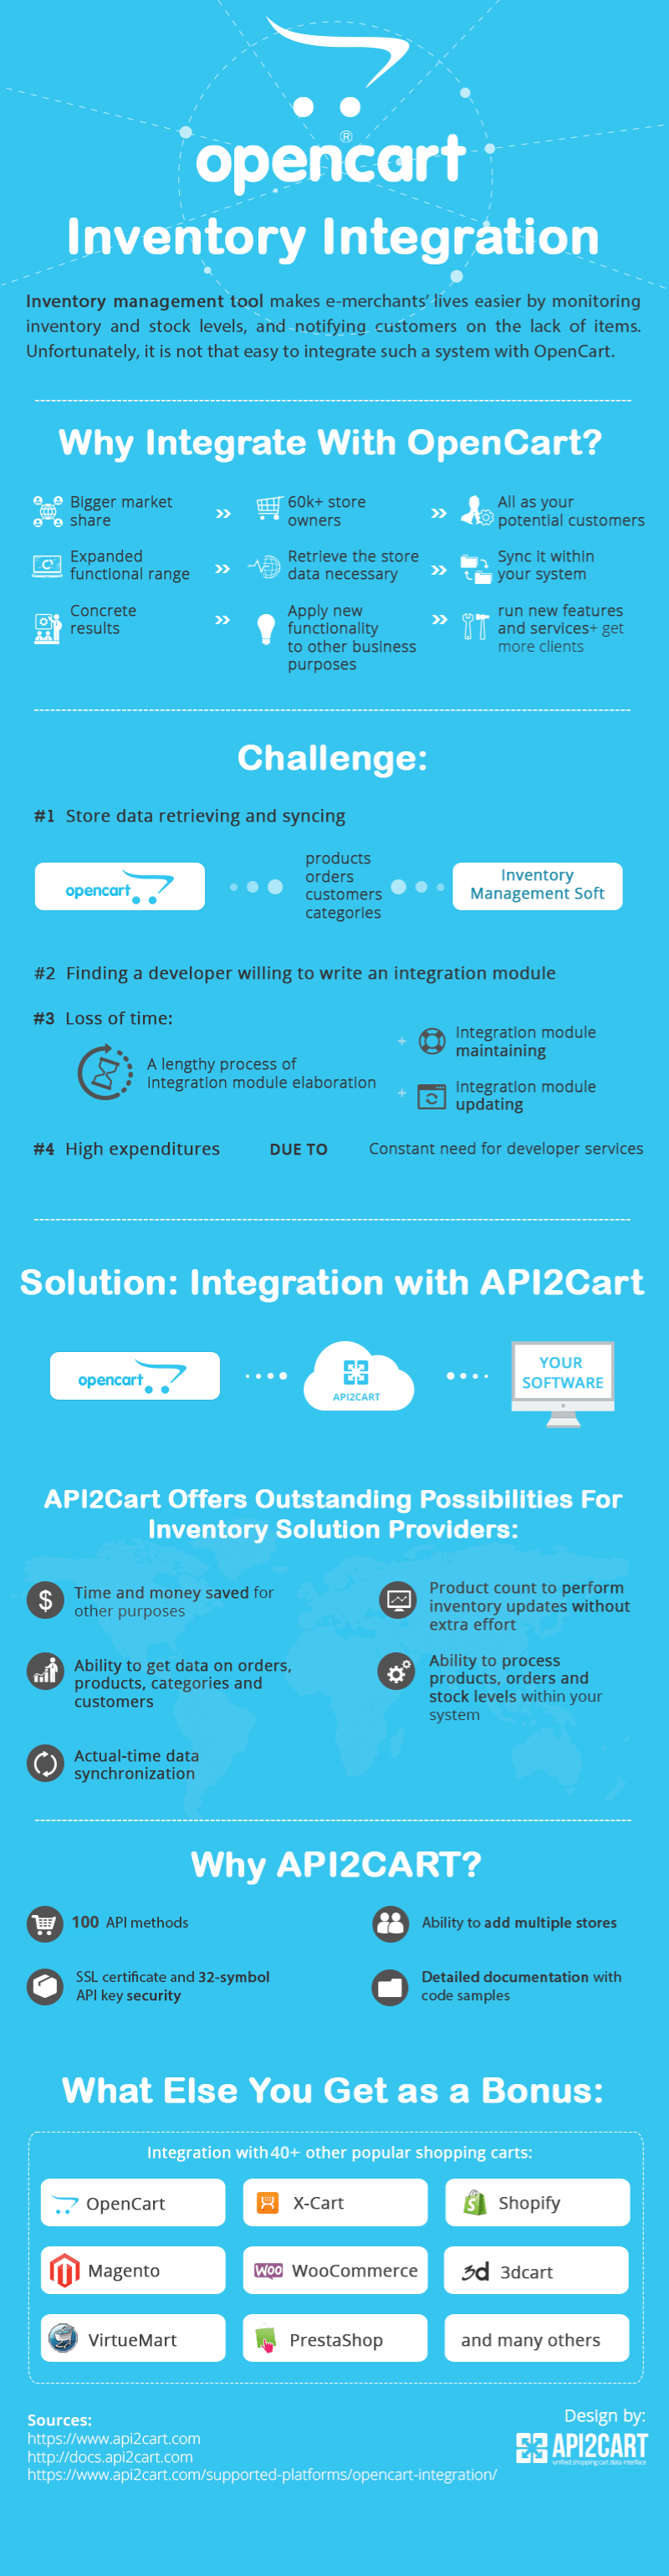 opencart_inventory_integration